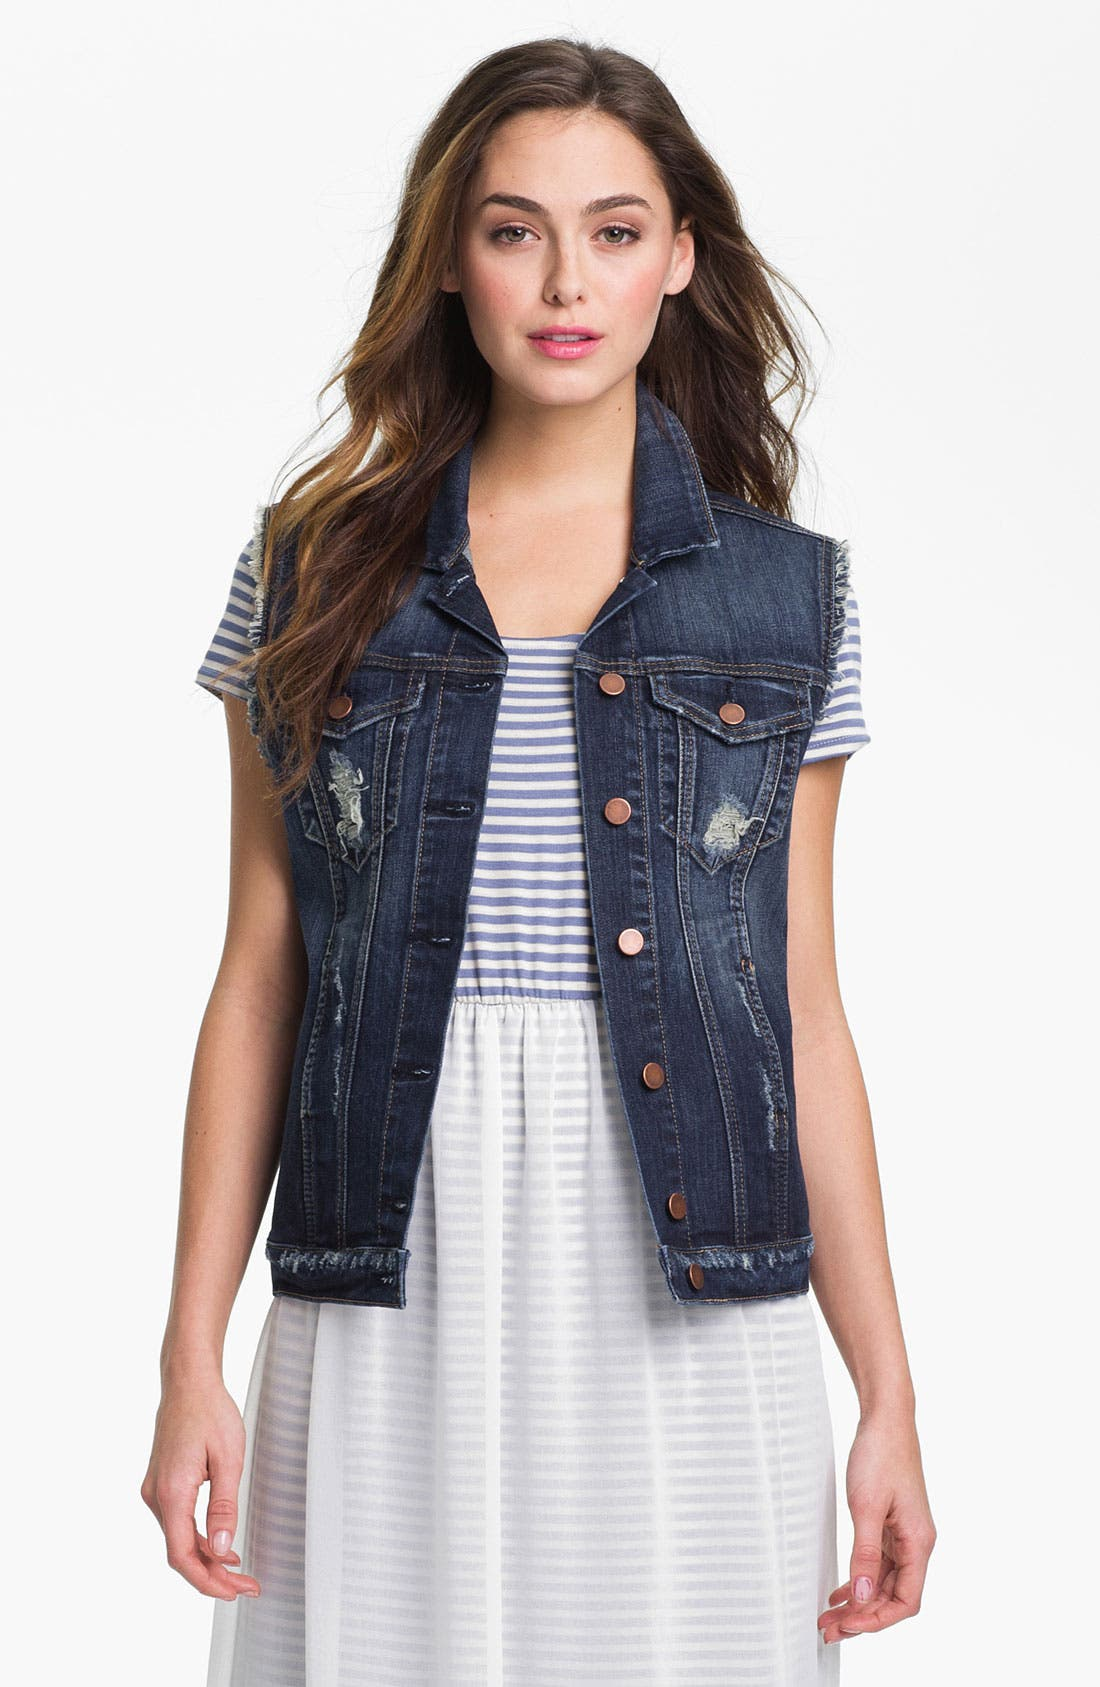 Alternate Image 1 Selected - KUT from the Kloth Distressed Denim Vest